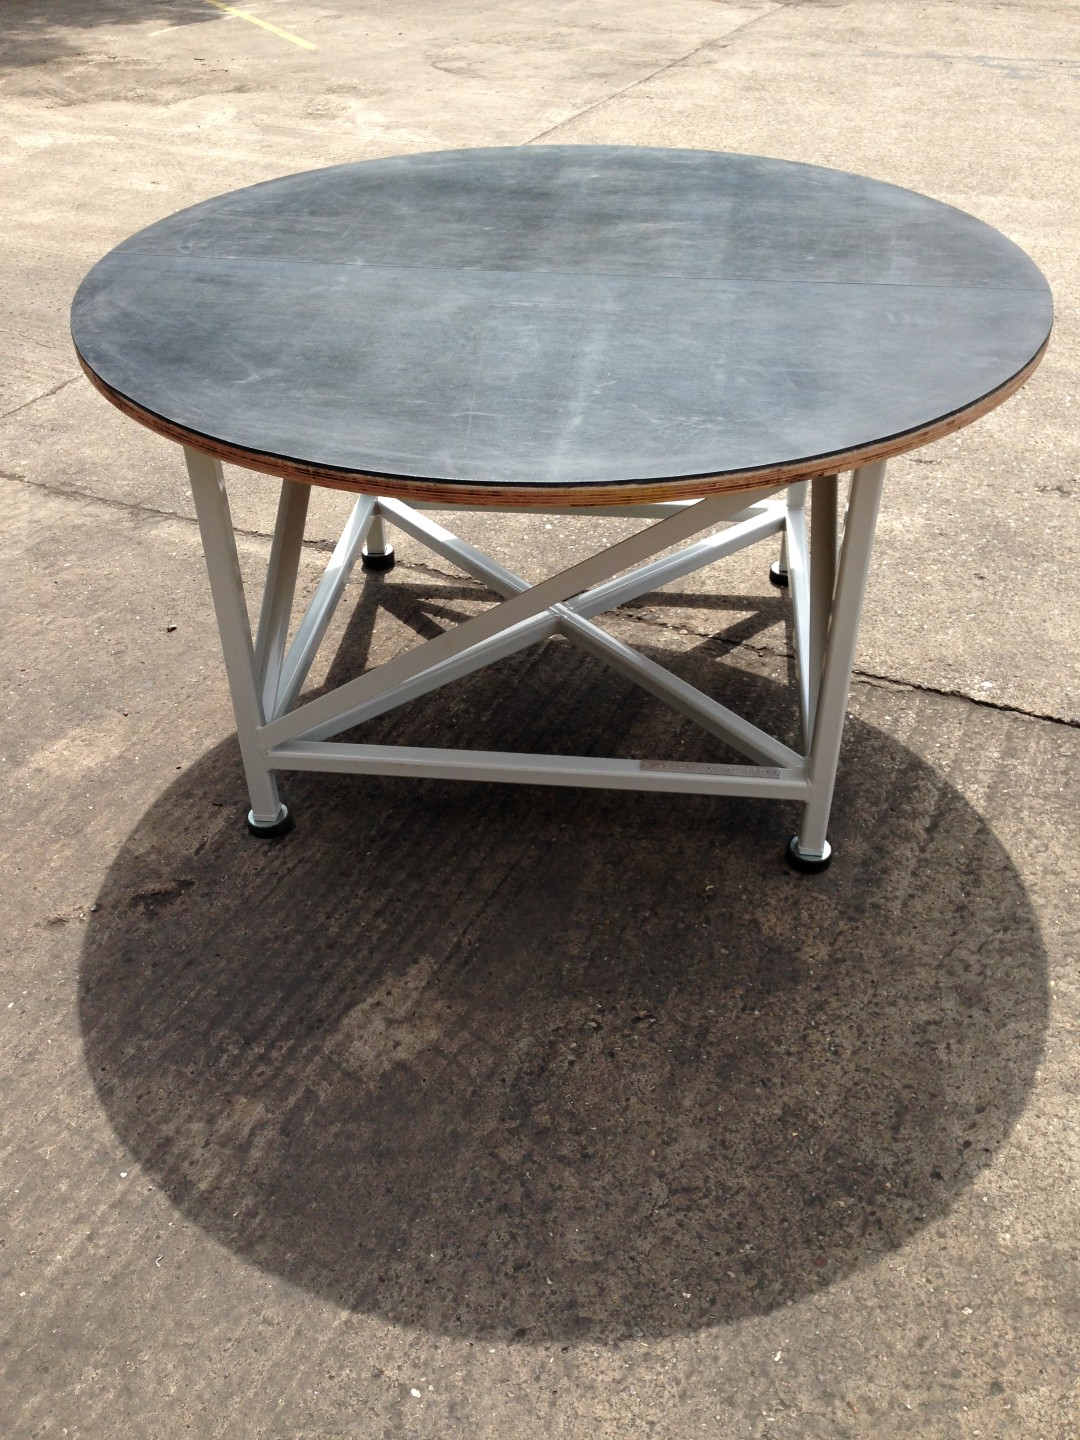 Circular Inspection Table